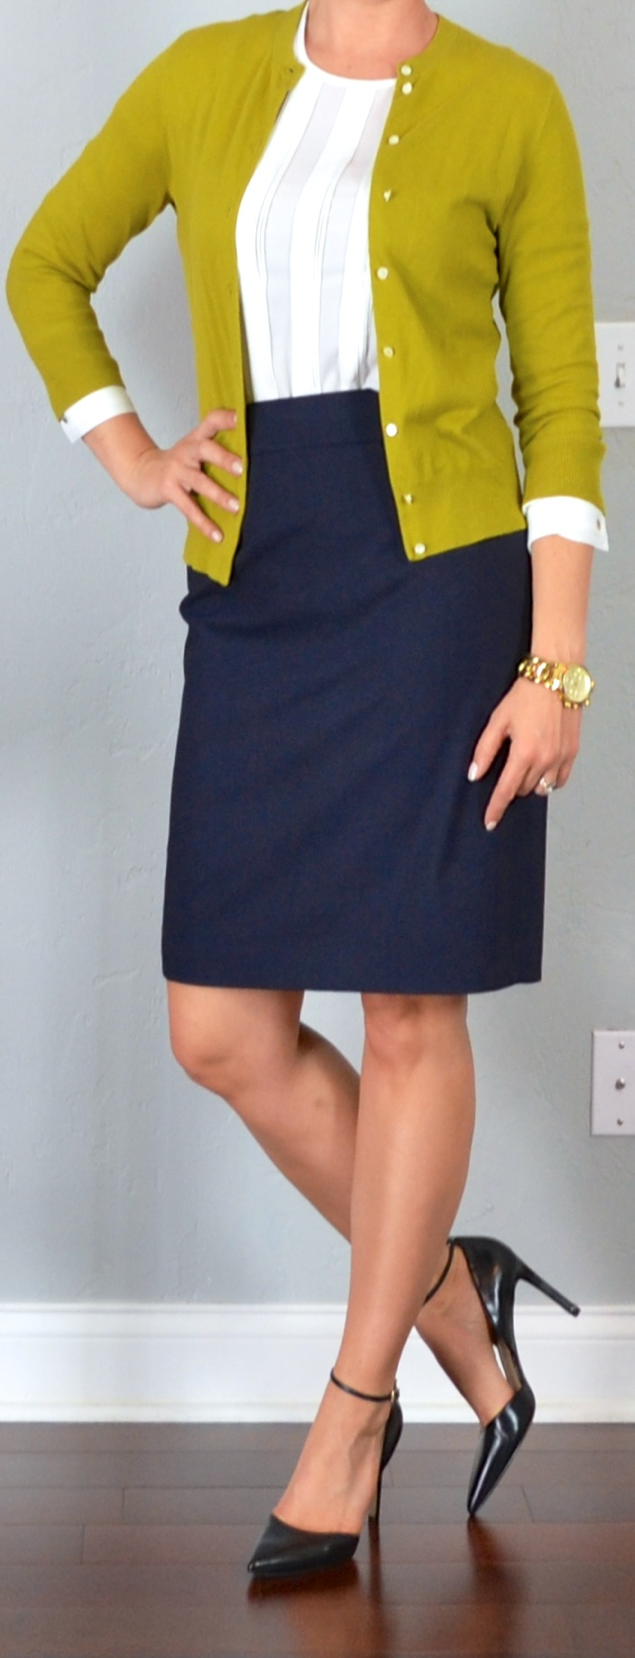 67dc7106f outfit post: white blouse, mustard/green cardigan, navy pencil skirt, black  pointed toe heels